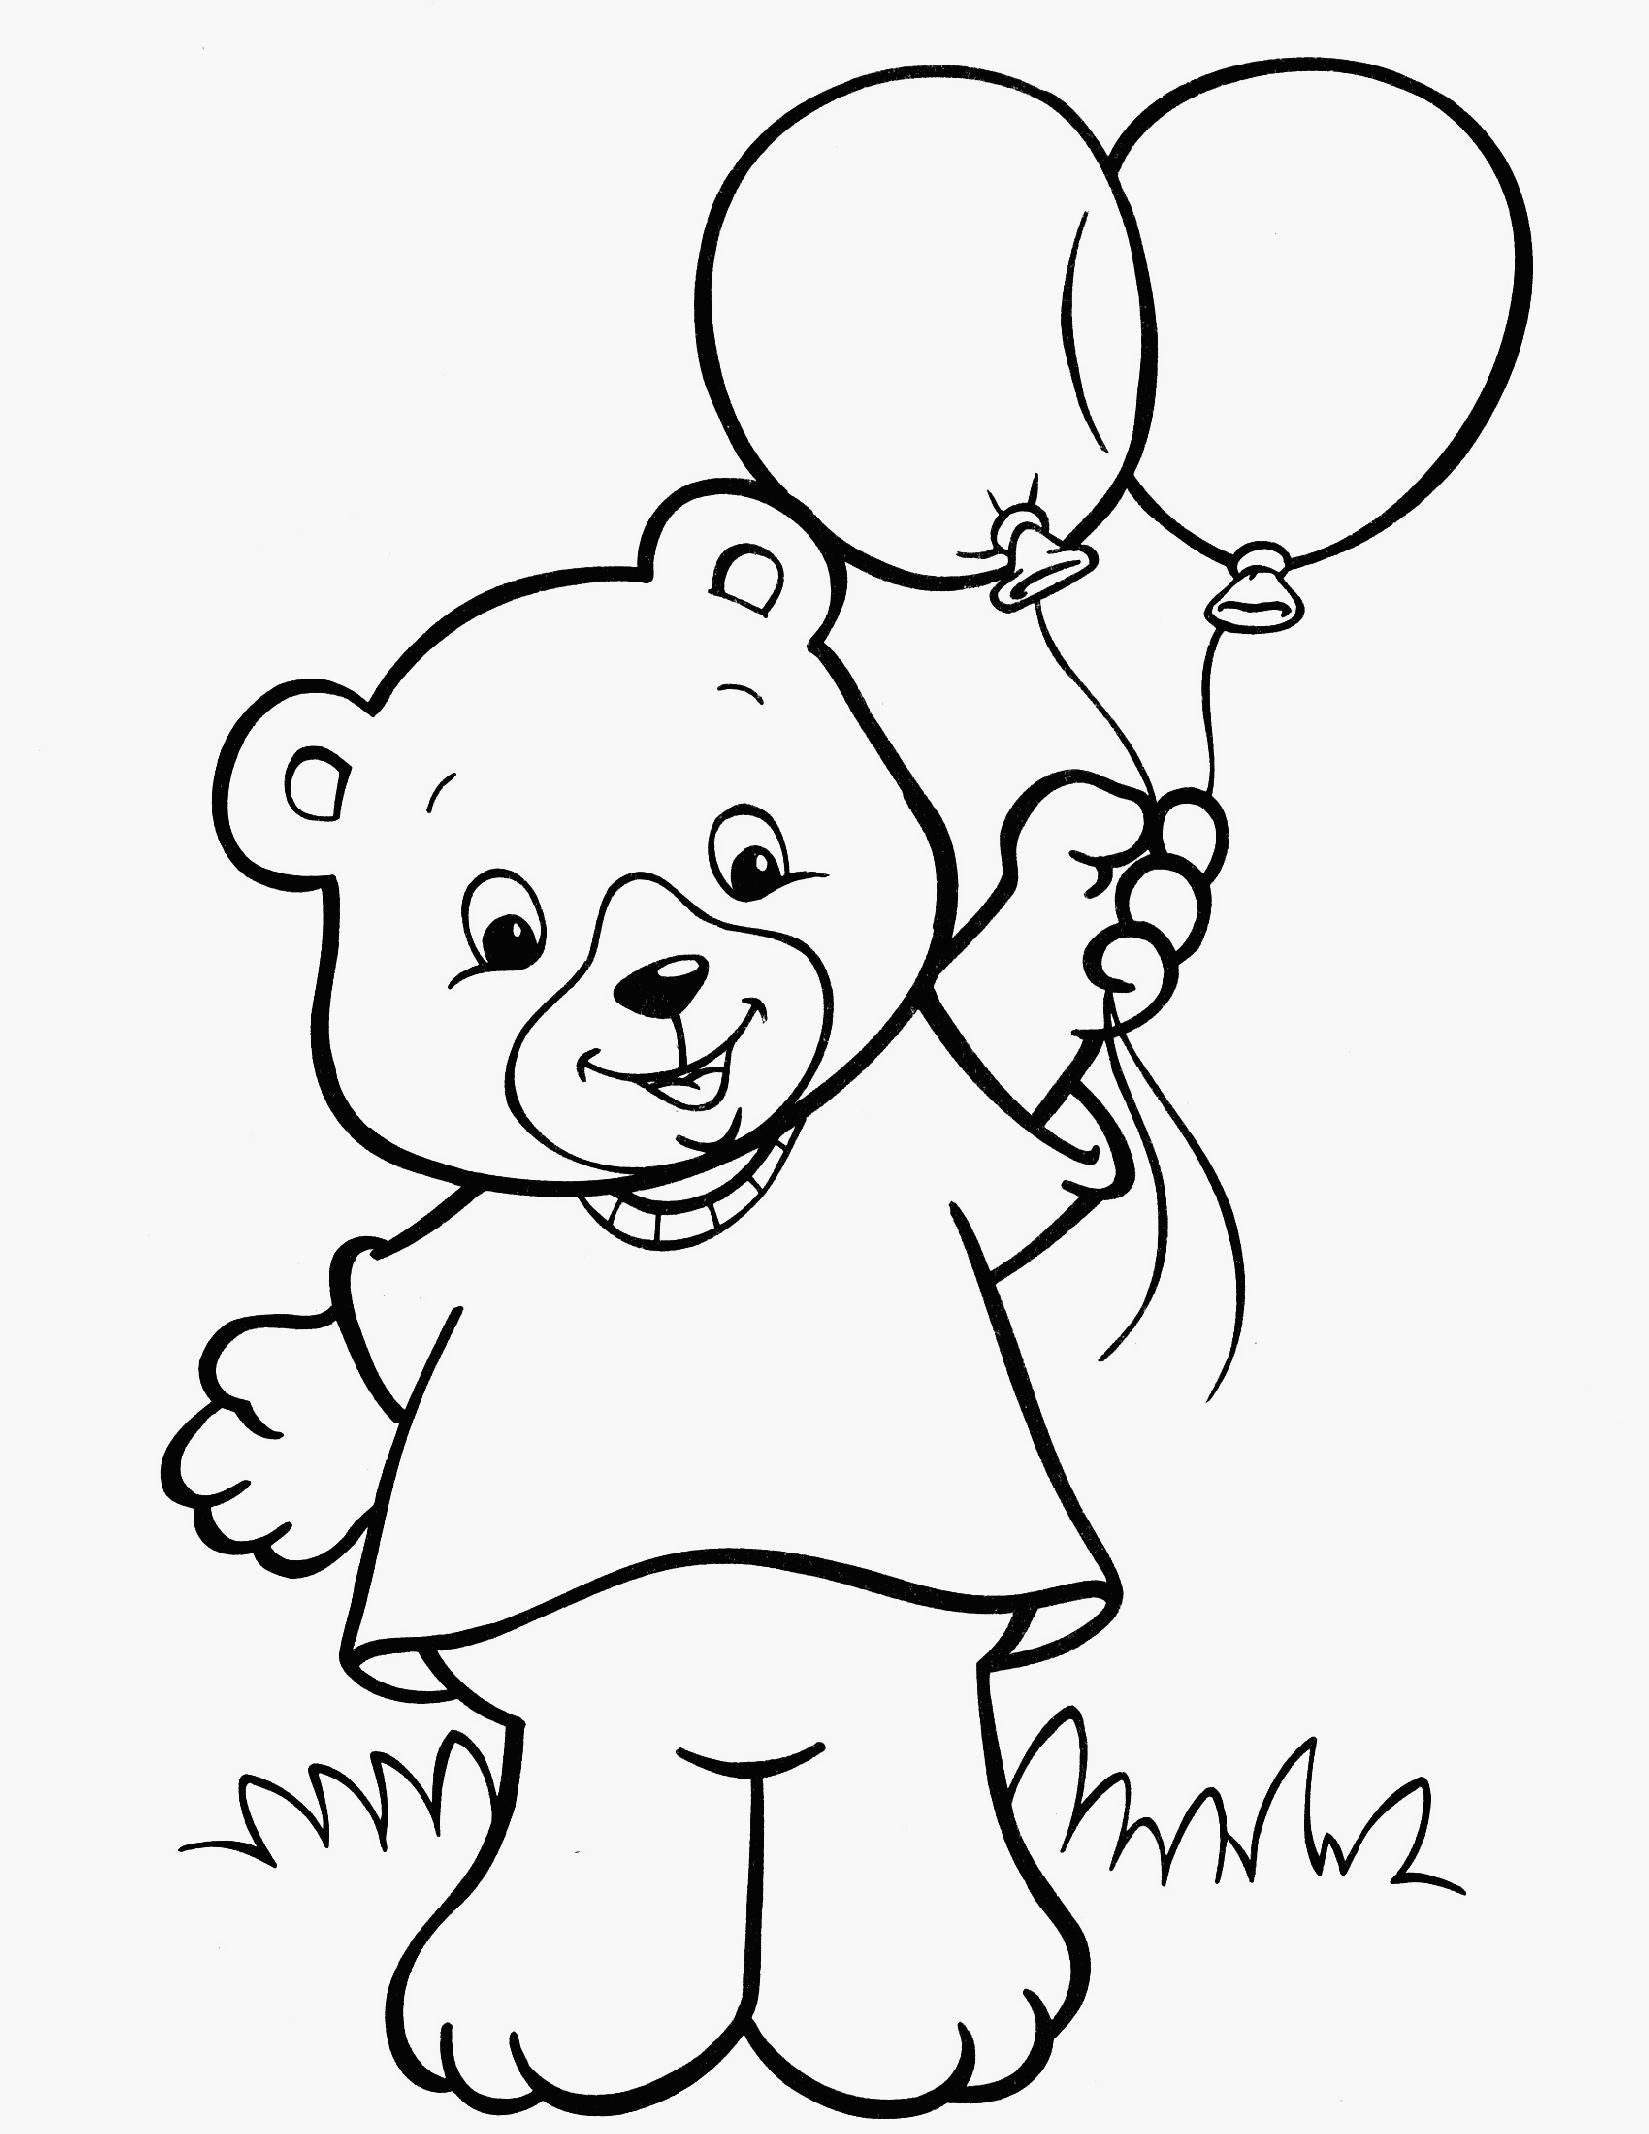 Coloring Pages For 3 4 Years Old Easy Coloring Pages Free